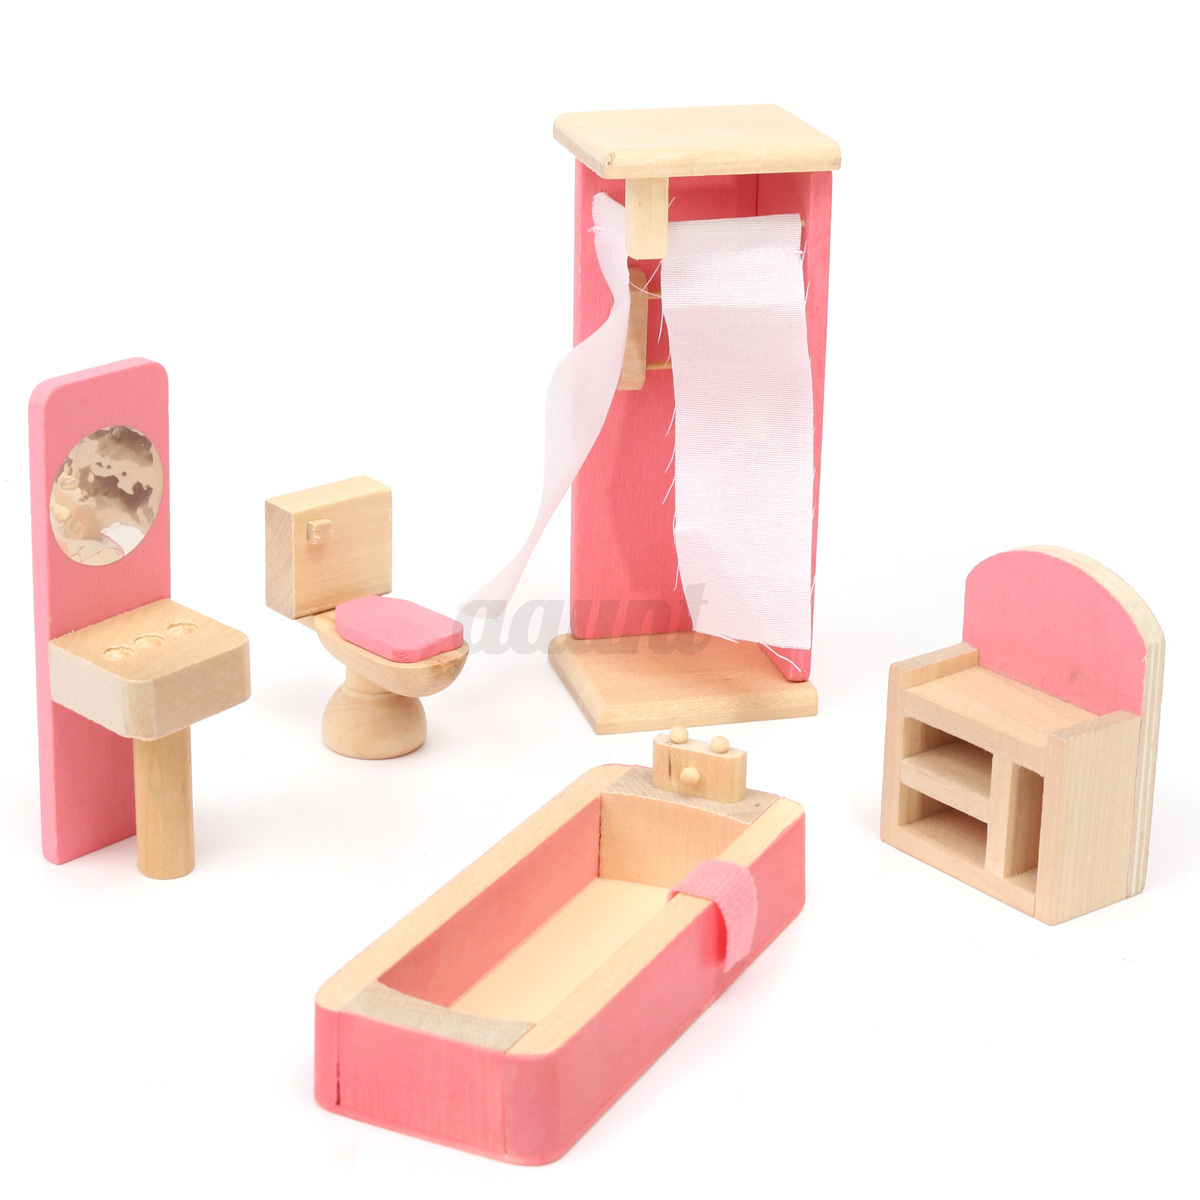 Miniature House Family Children Wooden Furniture Doll Set Kit Toys Accessories Ebay